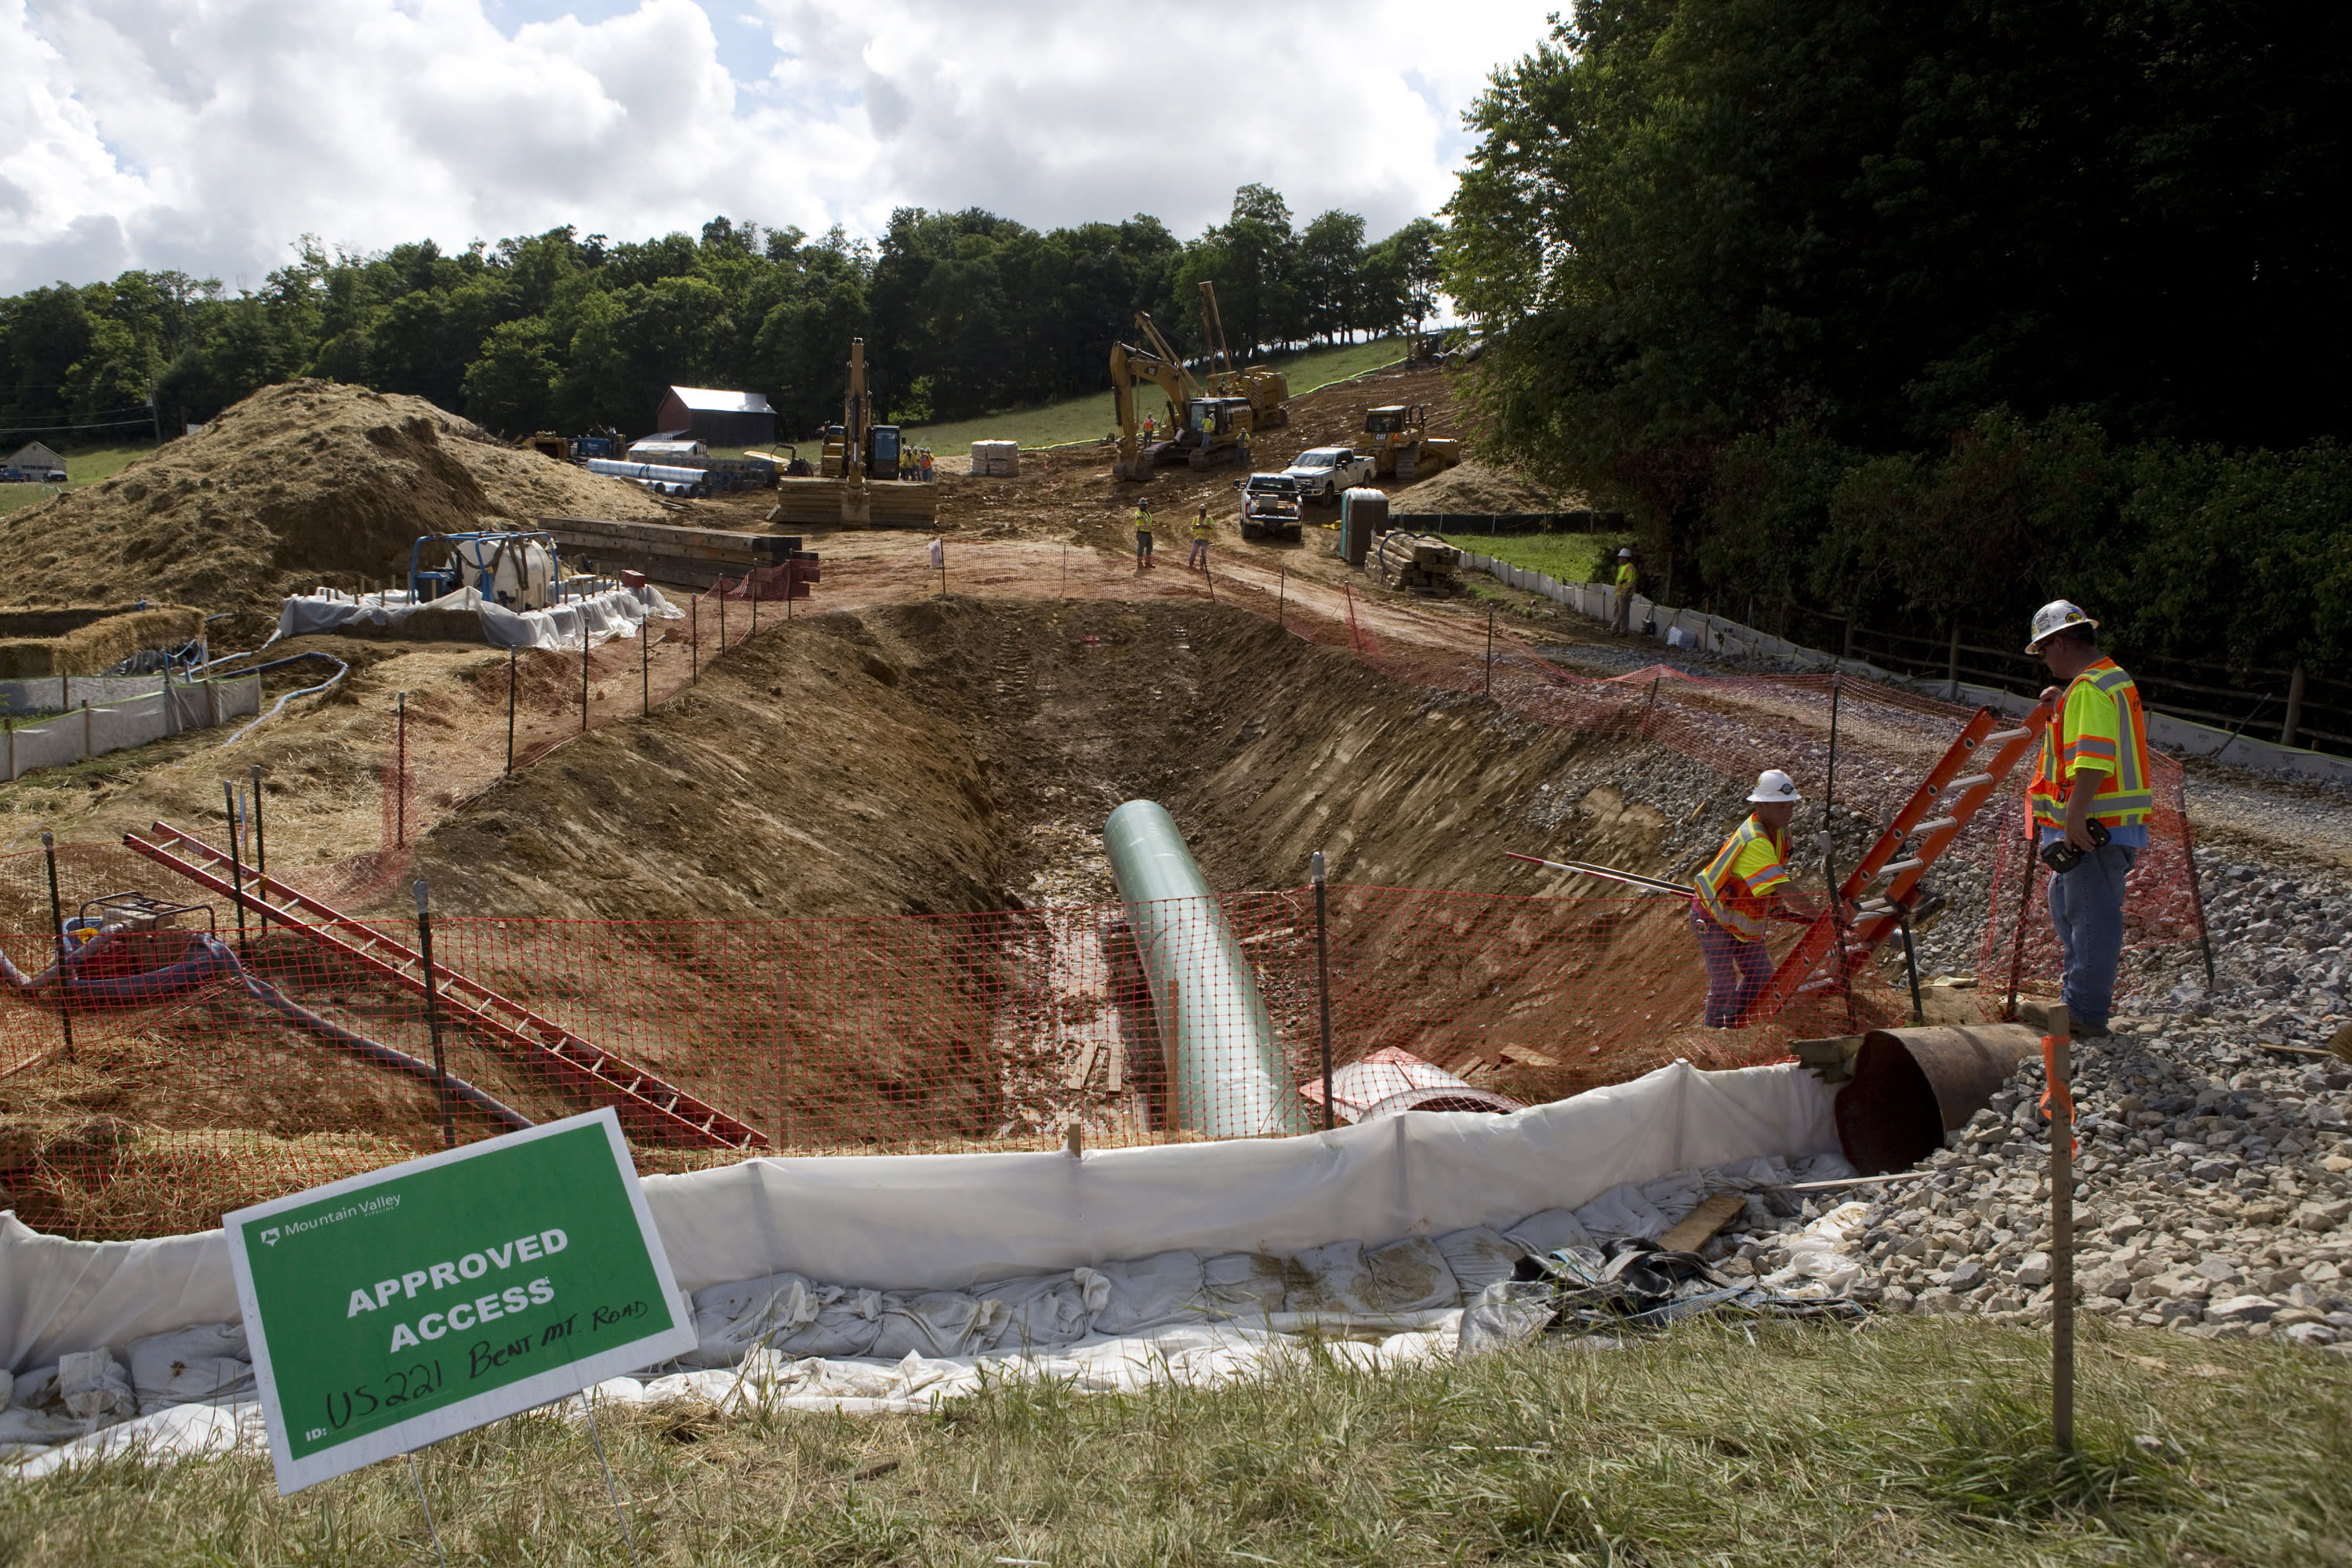 FILE - In this June 22, 2018, file photo, construction crews bore beneath U.S. 221 in Roanoke County, Va., to make a tunnel through which the Mountain Valley Pipeline will pass under the highway. The Trump administration is seeking to fast track environmental reviews of the pipeline and dozens of other energy, highway and other infrastructure projects across the U.S. (Heather Rousseau/The Roanoke Times via AP, File)